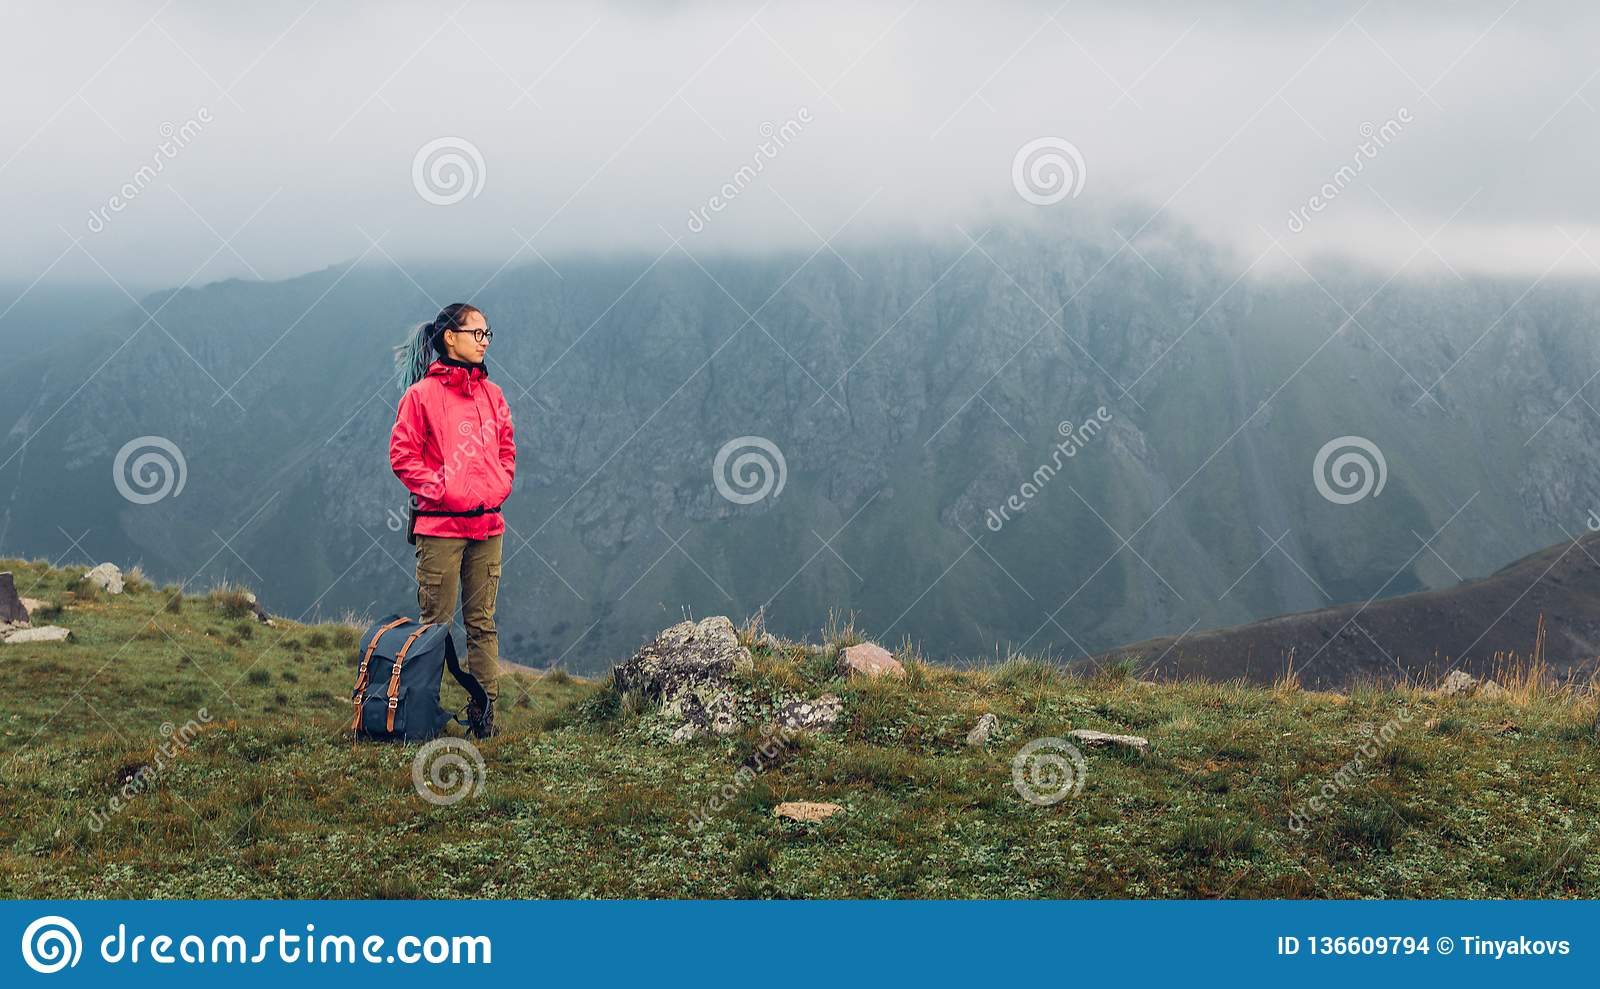 Discovery Travel Destination Adventure Concept. Young Hiker Woman With Backpack Rises To The Mountain Top with Copy Space